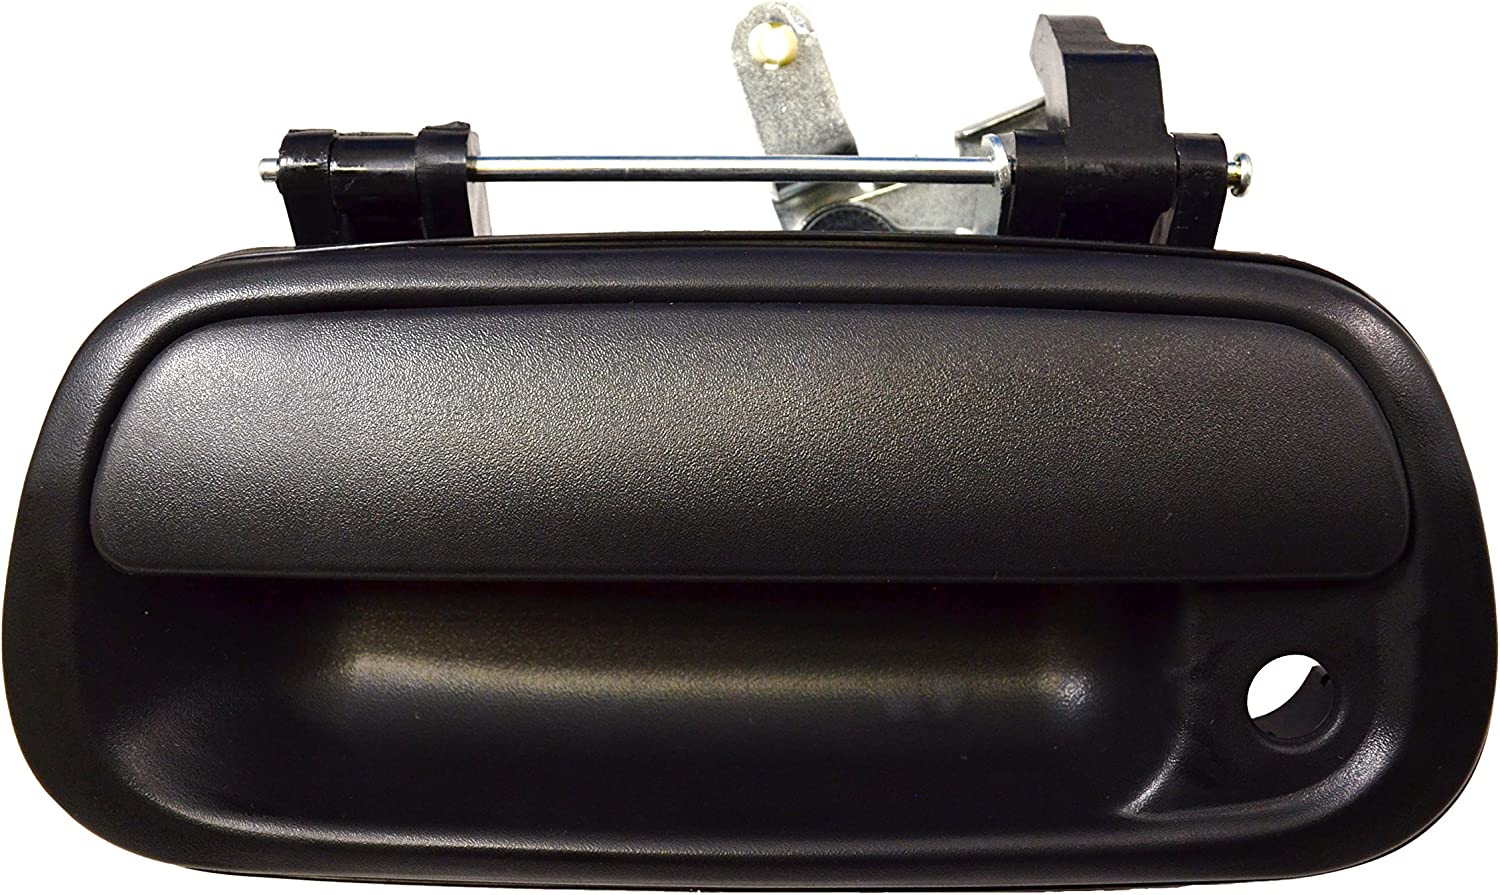 Tailgate Handle PT Auto Warehouse CH-3503A-TG Textured Black